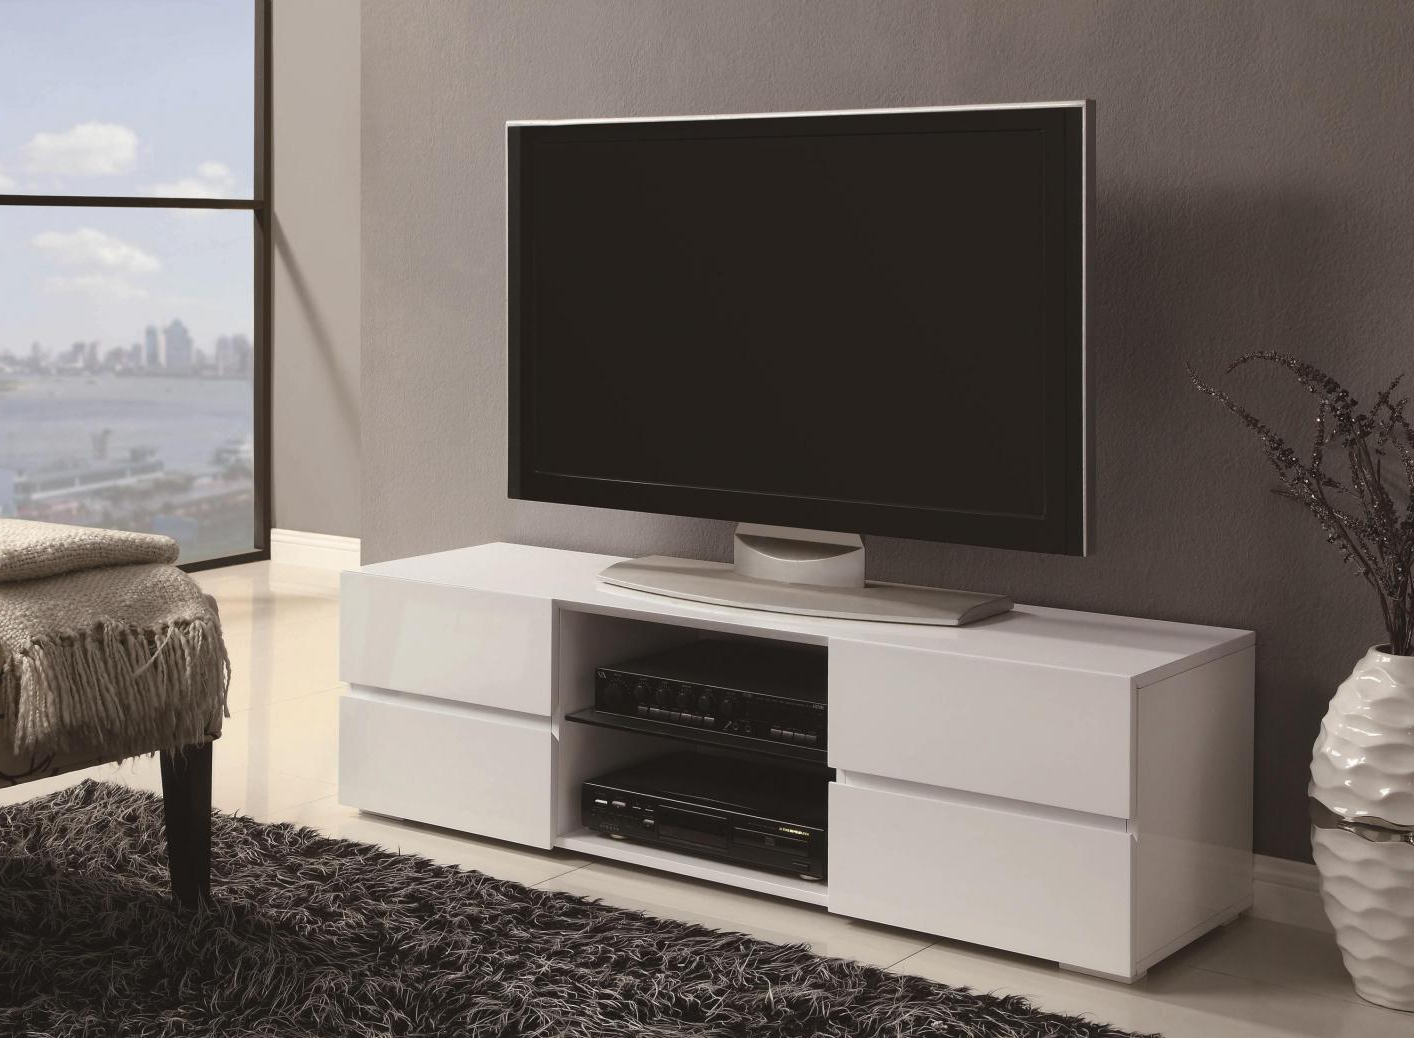 Preferred White And Wood Tv Stands Inside White Wood Tv Stand – Steal A Sofa Furniture Outlet Los Angeles Ca (Gallery 19 of 20)